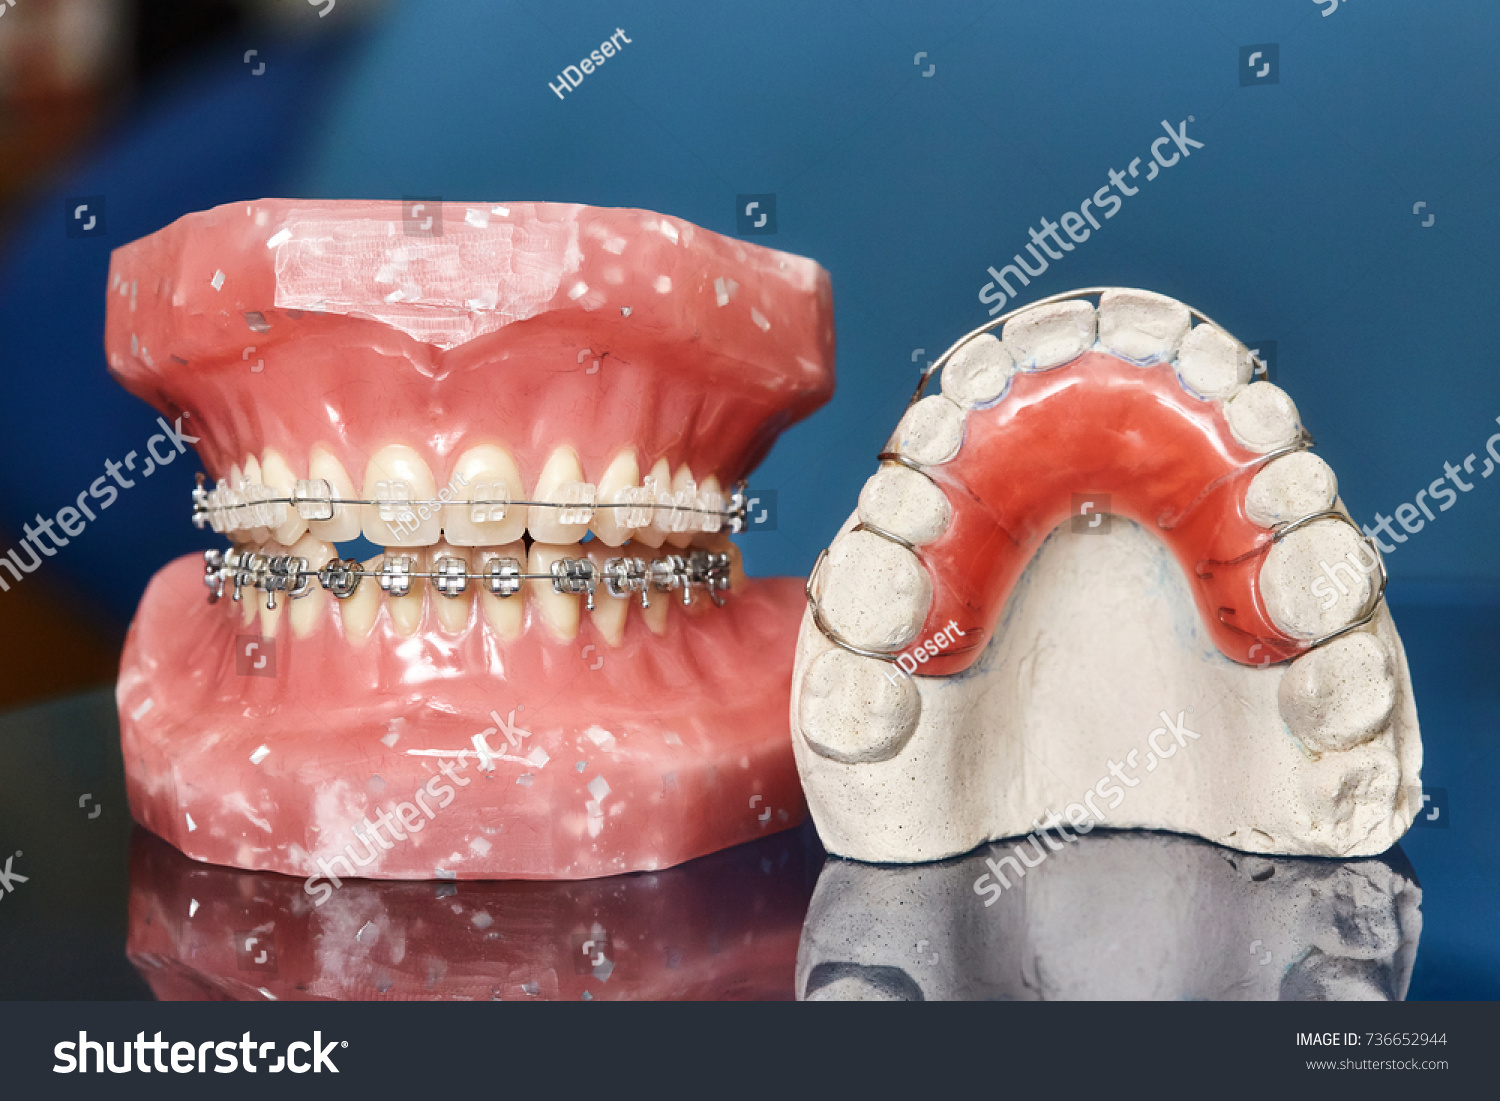 Human Jaw Teeth Model Metal Wired Stock Photo (Edit Now) 736652944 ...